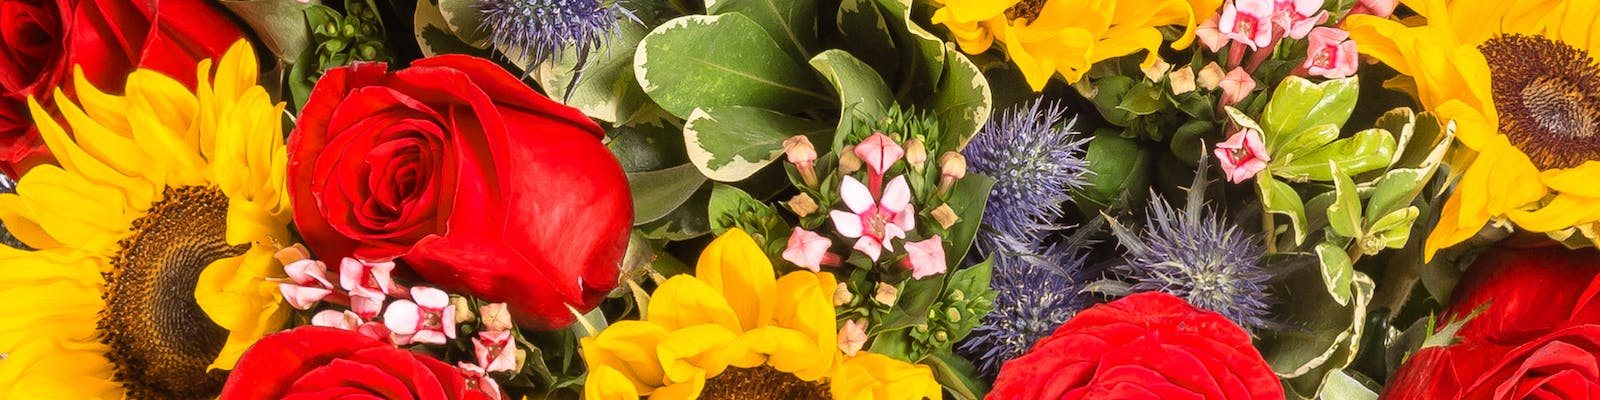 St Louis Flower Delivery Walter Knoll Florist St Louis Mo Same Day